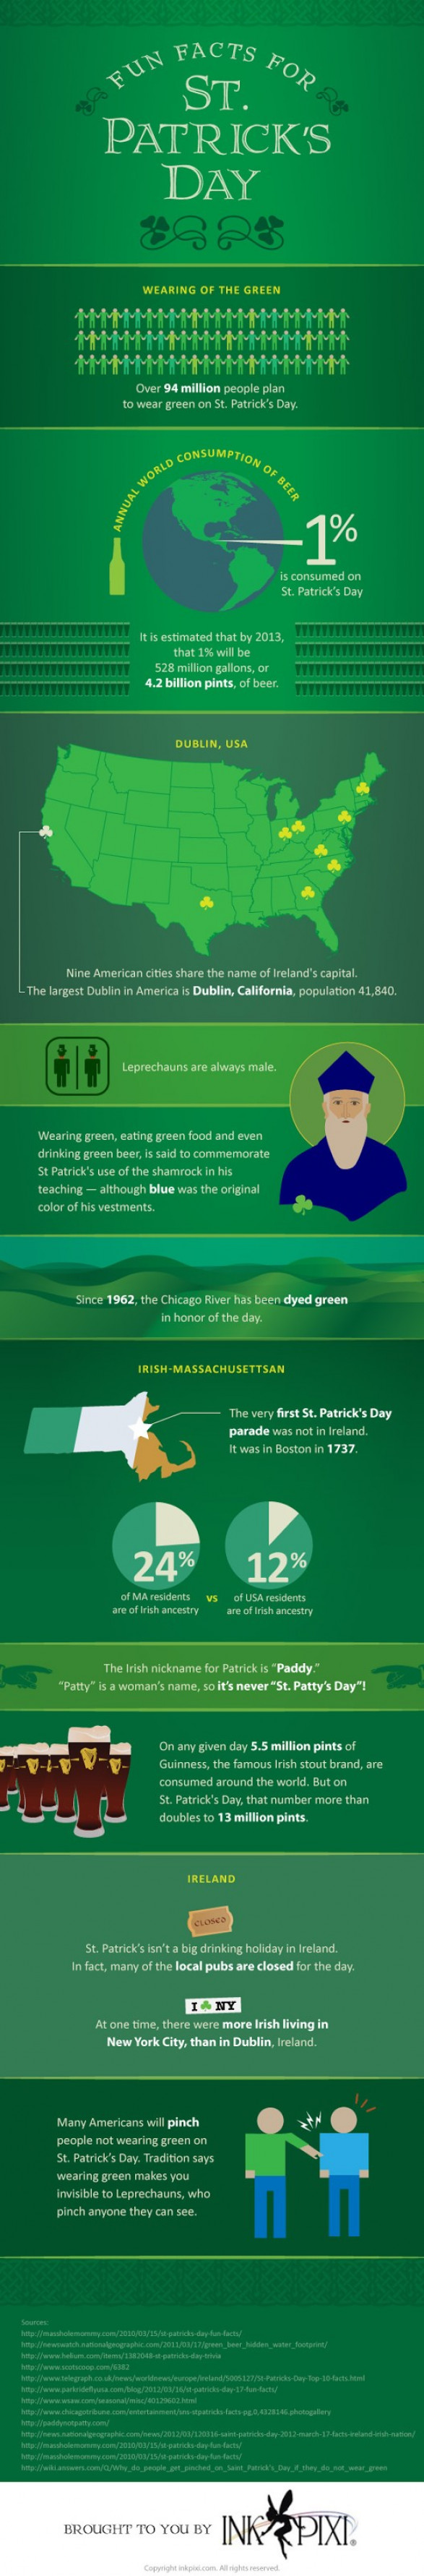 The Best Sites For Learning About St. Patrick's Day (& April Fools Day)